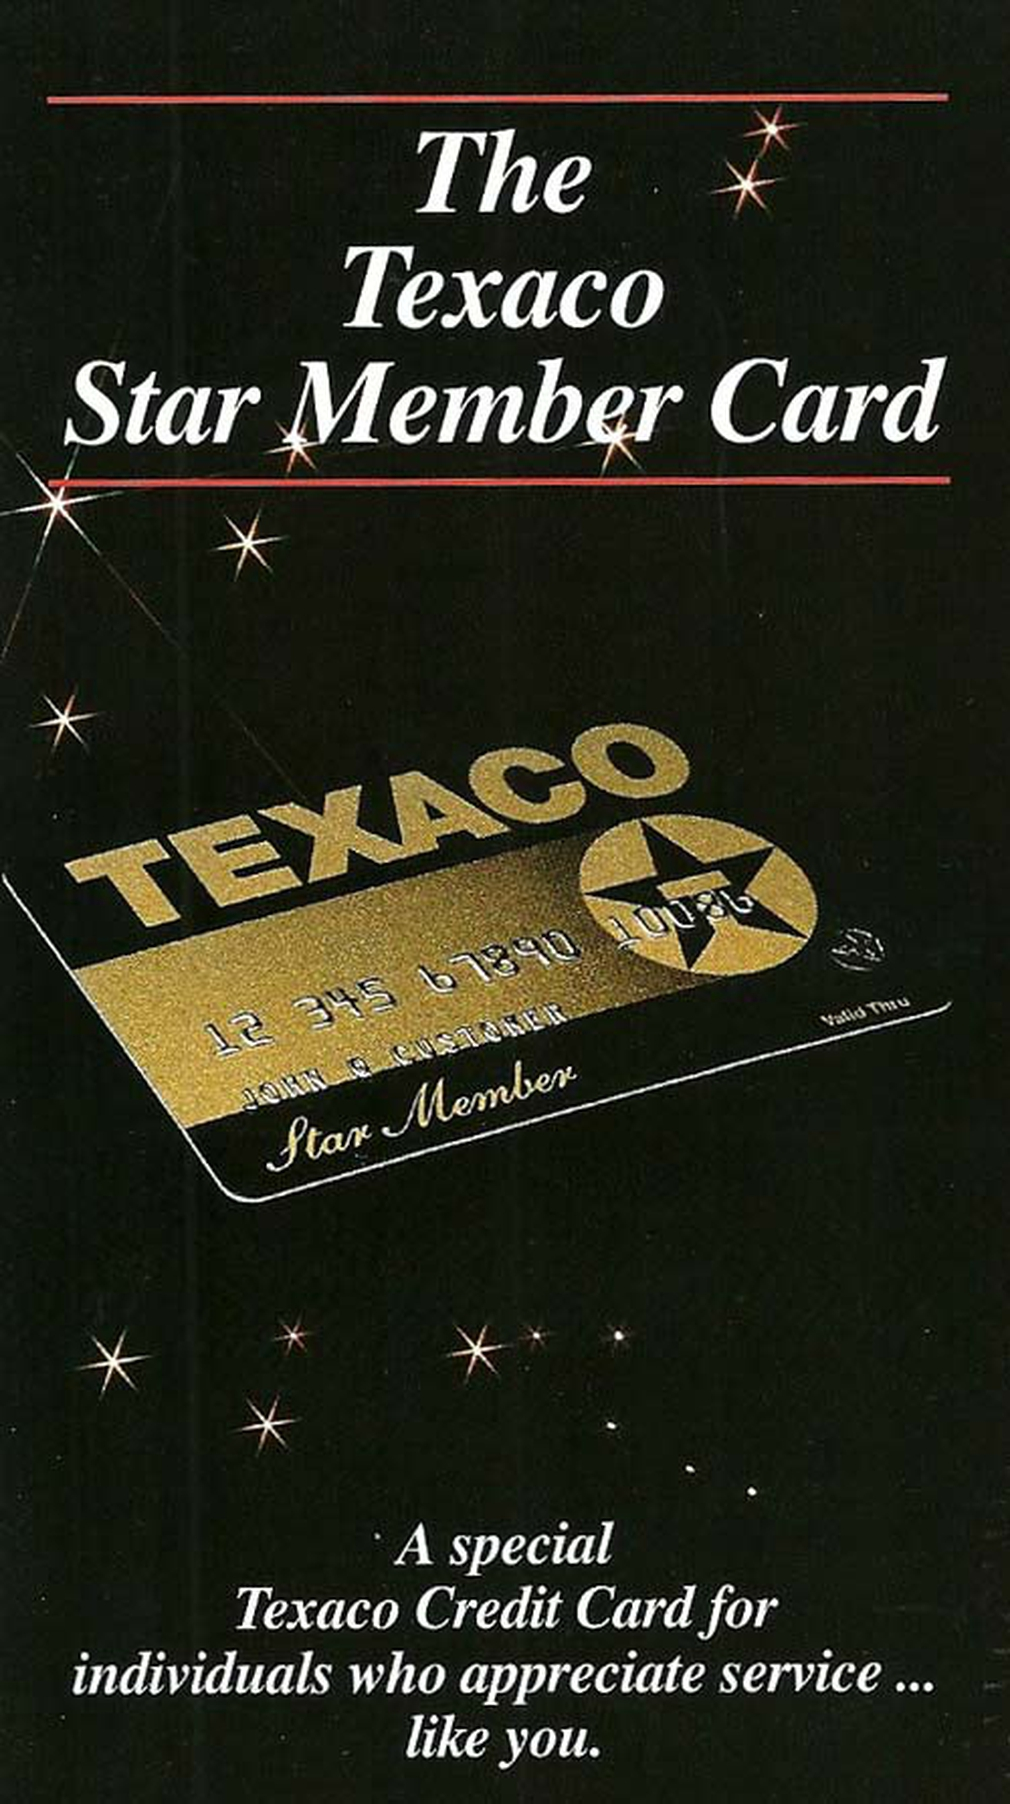 Texaco vintage credit card ad